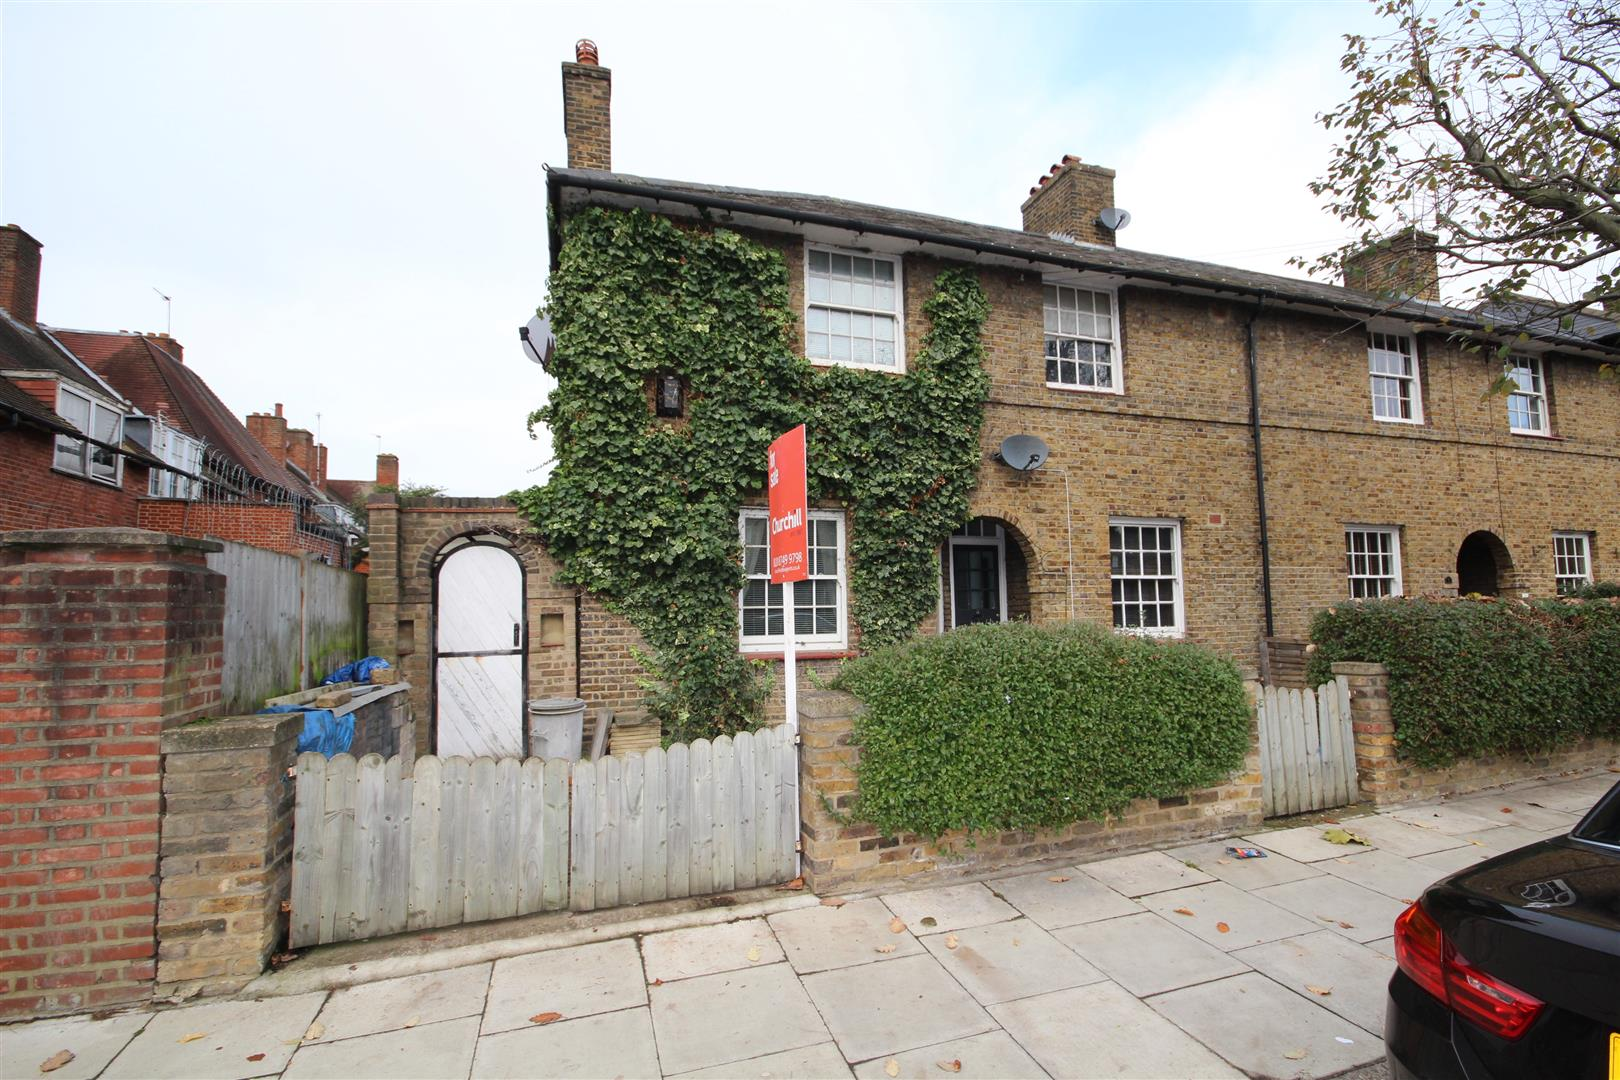 3 Bedrooms House for sale in Braybrook Street, London